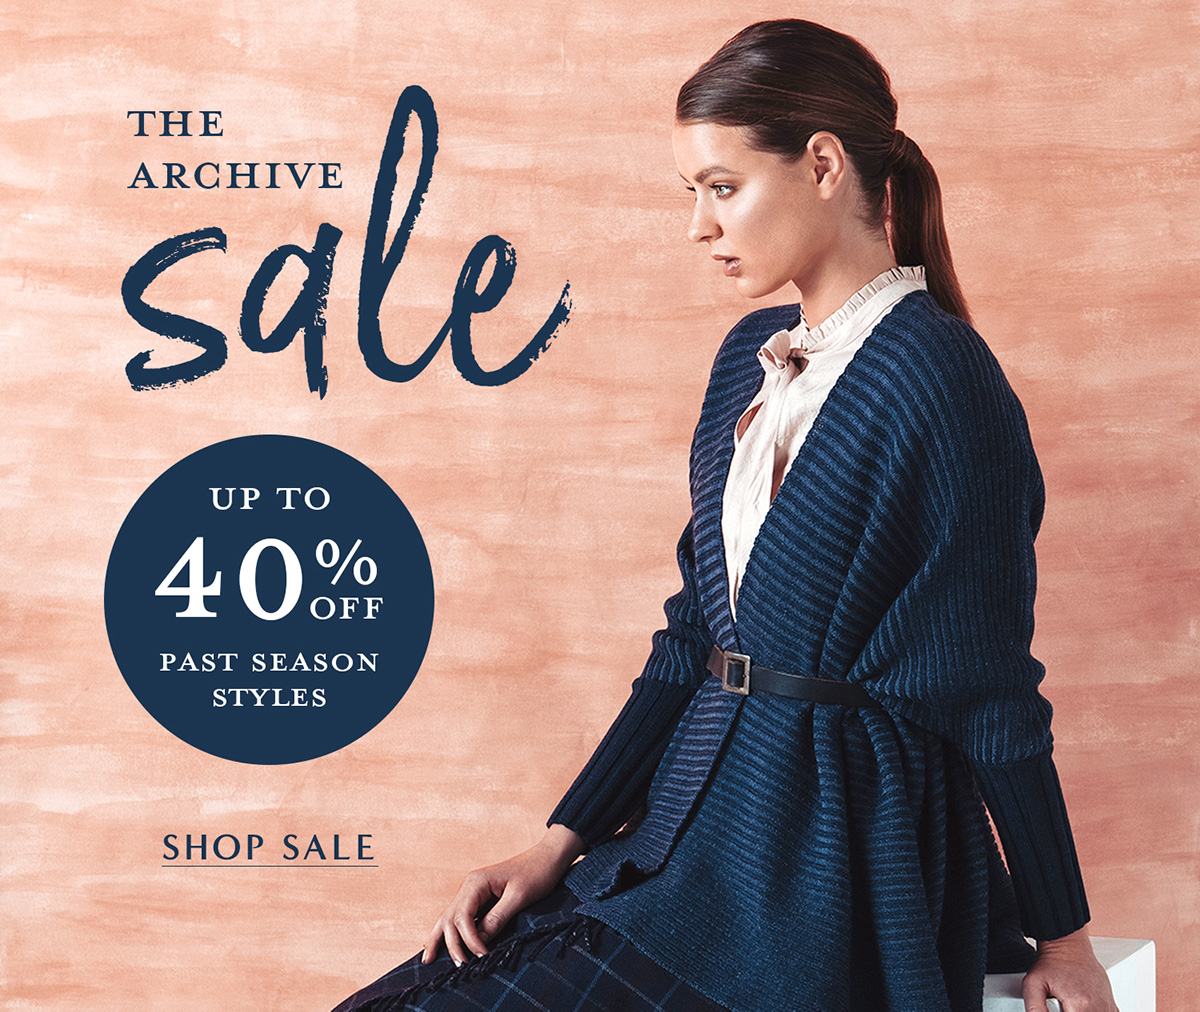 Get set for a Sale! Journey back in time with us and rediscover some of our past styles at incredible prices.